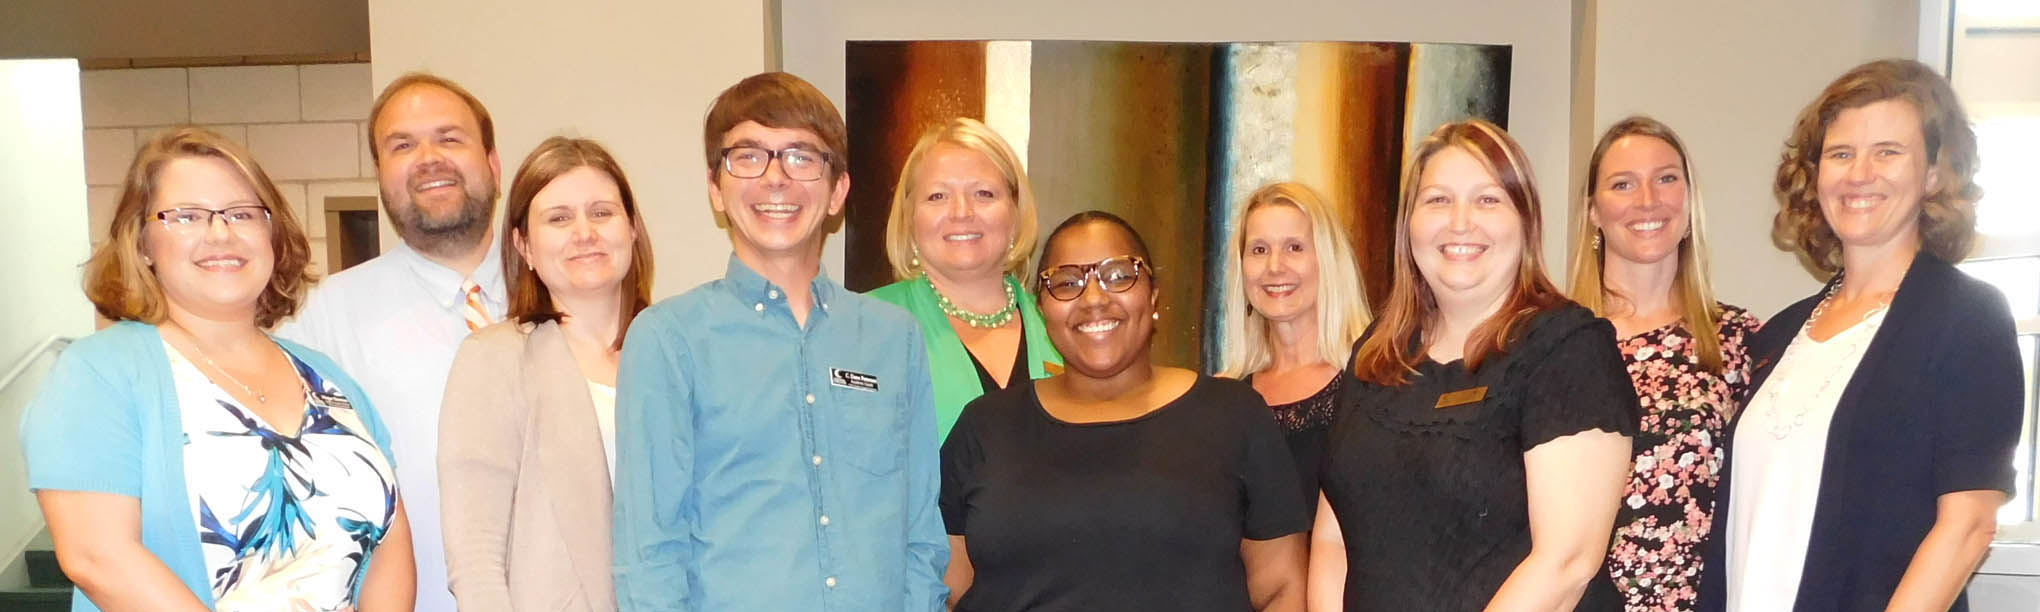 Click to enlarge,  Central Carolina Community College TRiO staff members are all smiles about receiving two new Upward Bound TRiO grants to serve students in Harnett and Lee counties. For more information about the Upward Bound Math and Science TRiO program at Central Carolina Community College, please call 919-718-7463 or email ub@cccc.edu.